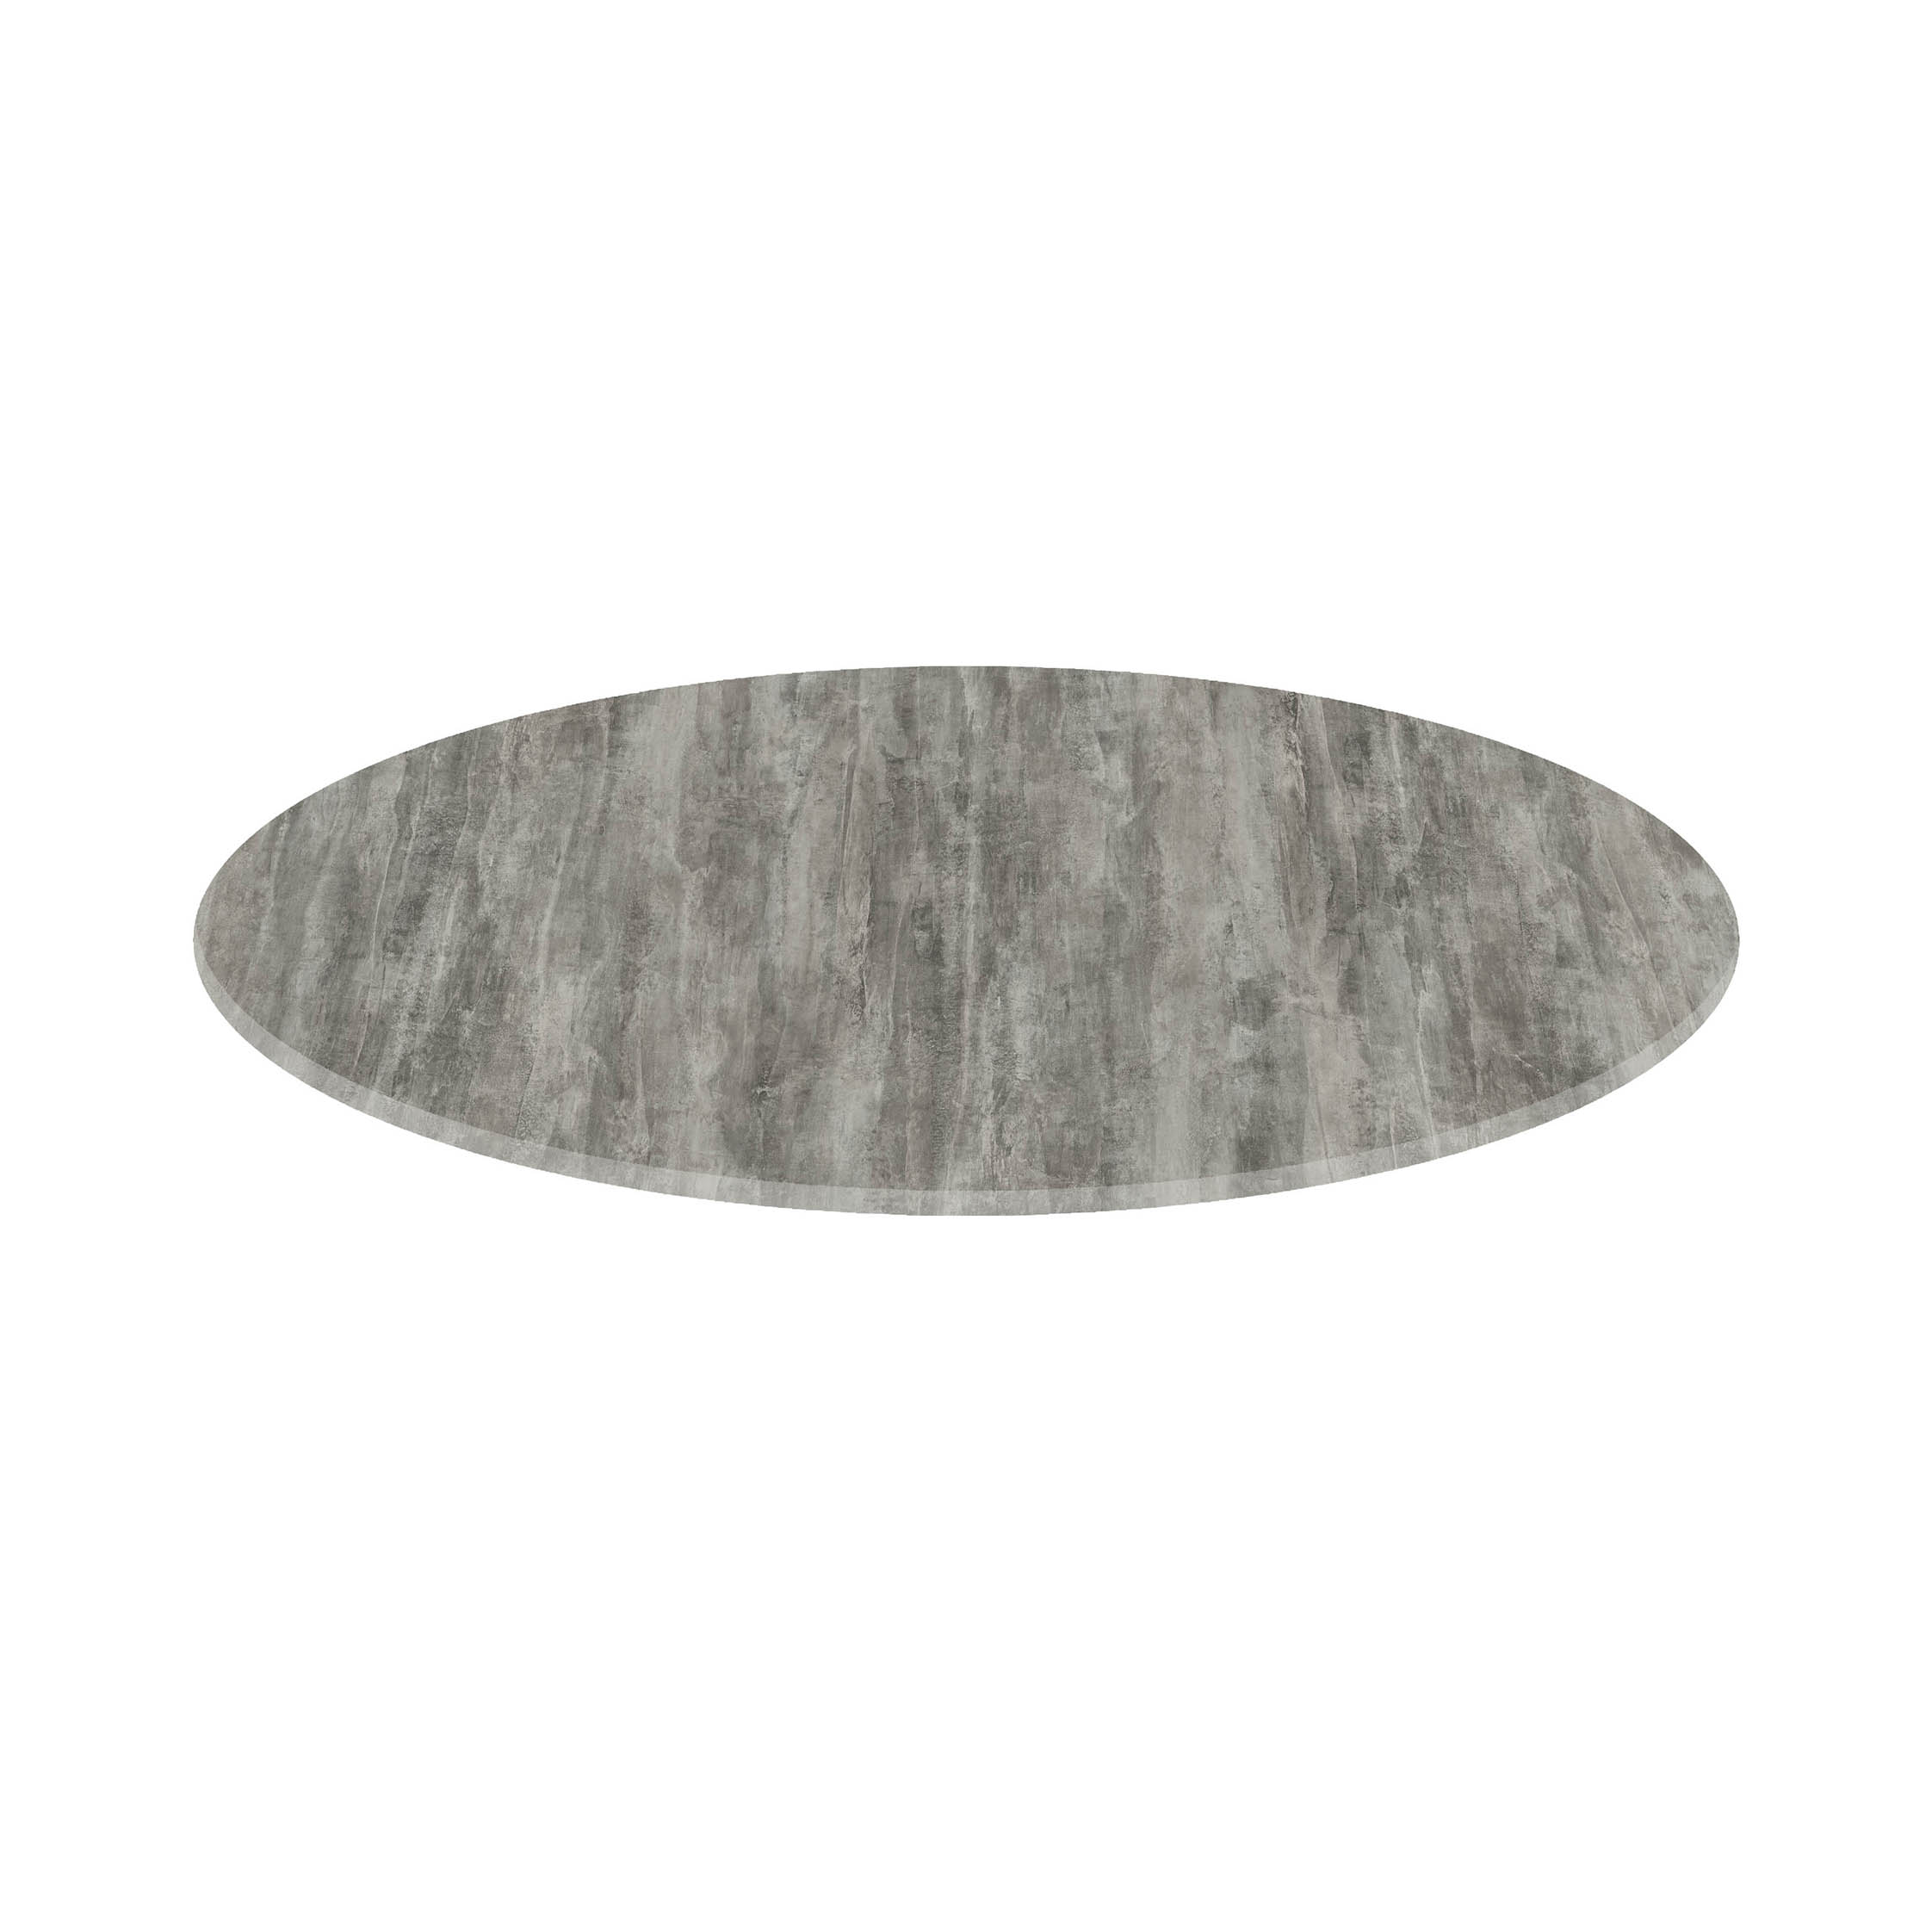 Round table top 70cm - Cement